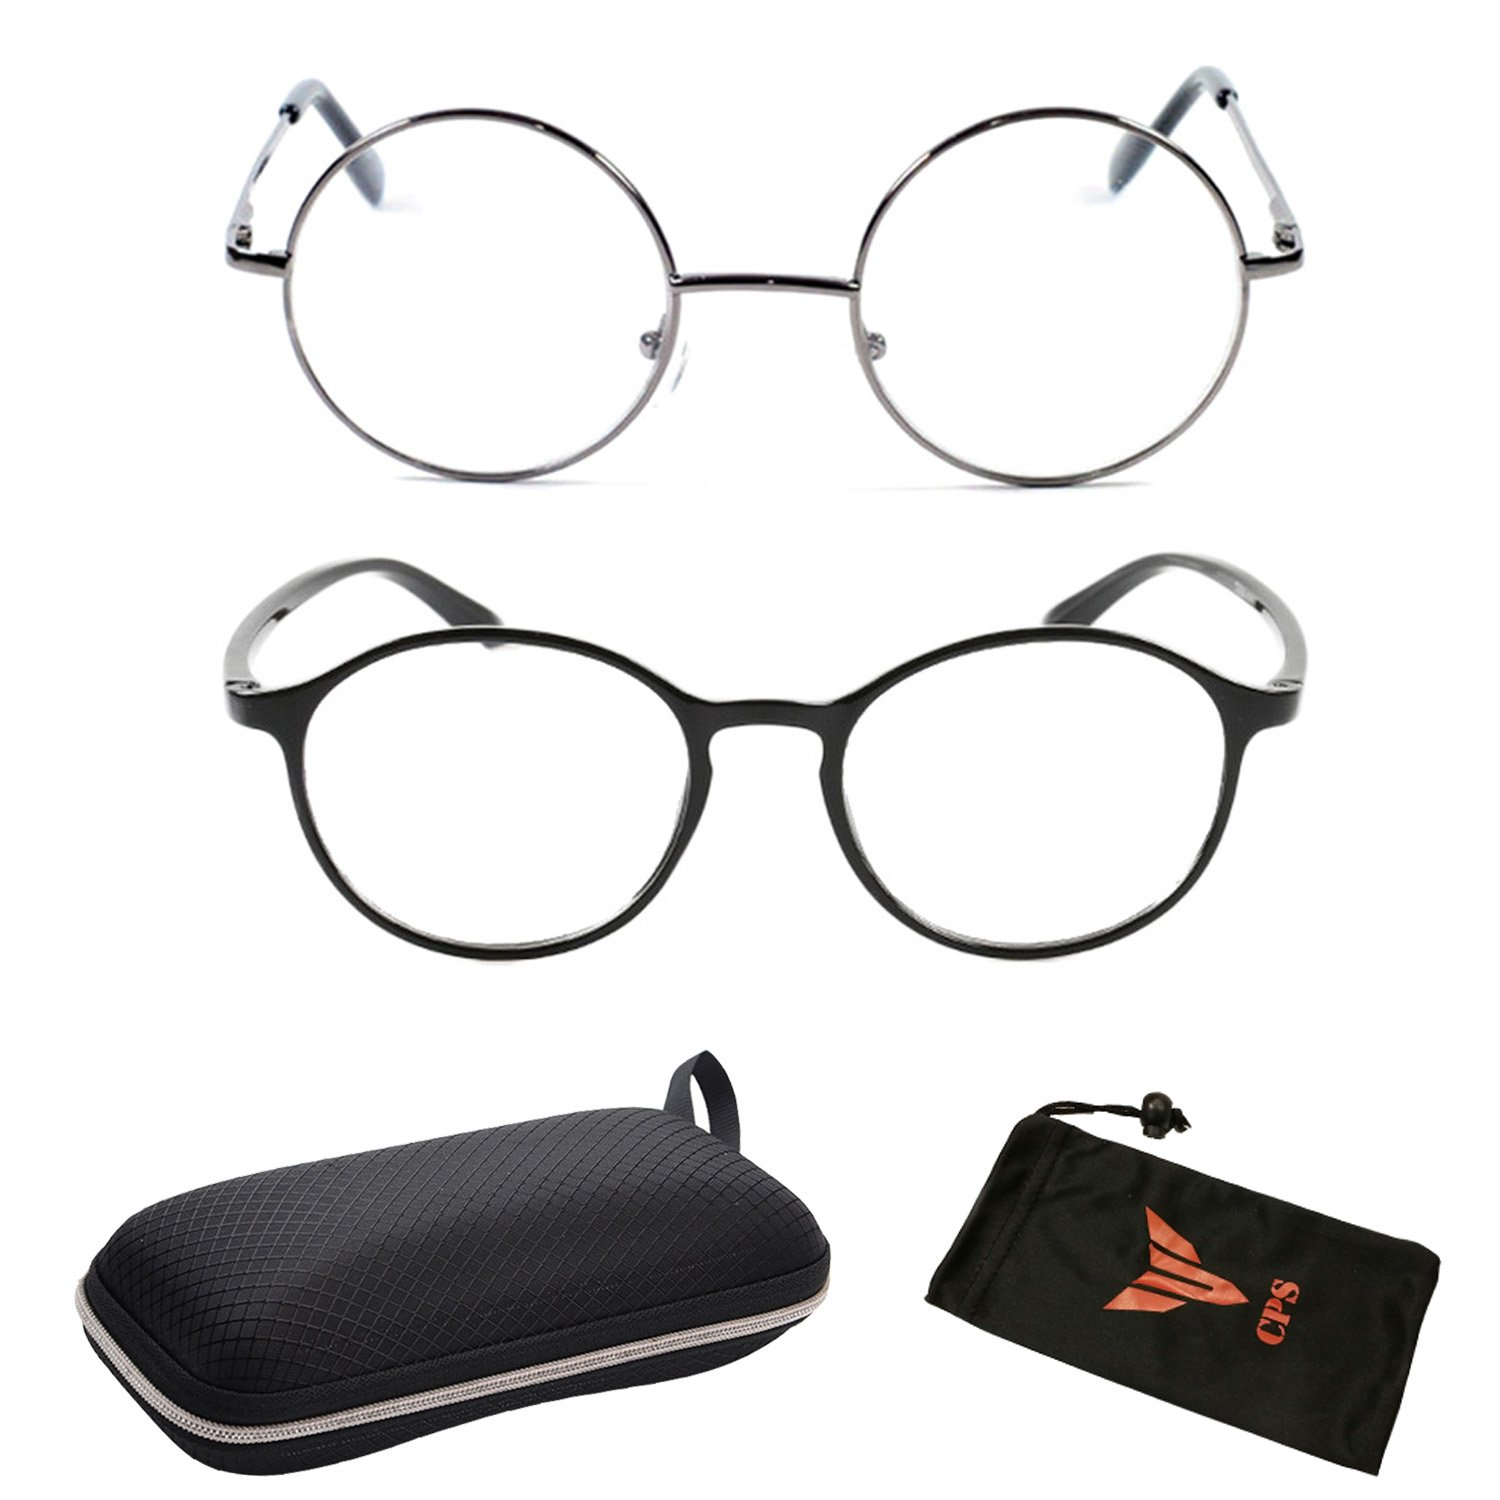 2a3af4ba7a5f Galleon - ( VRO1P + VR01) Men Women Unisex Retro Classic Reading Glasses  Reader Eye Wear Glasses Spring Hinged Round With Free Pouch